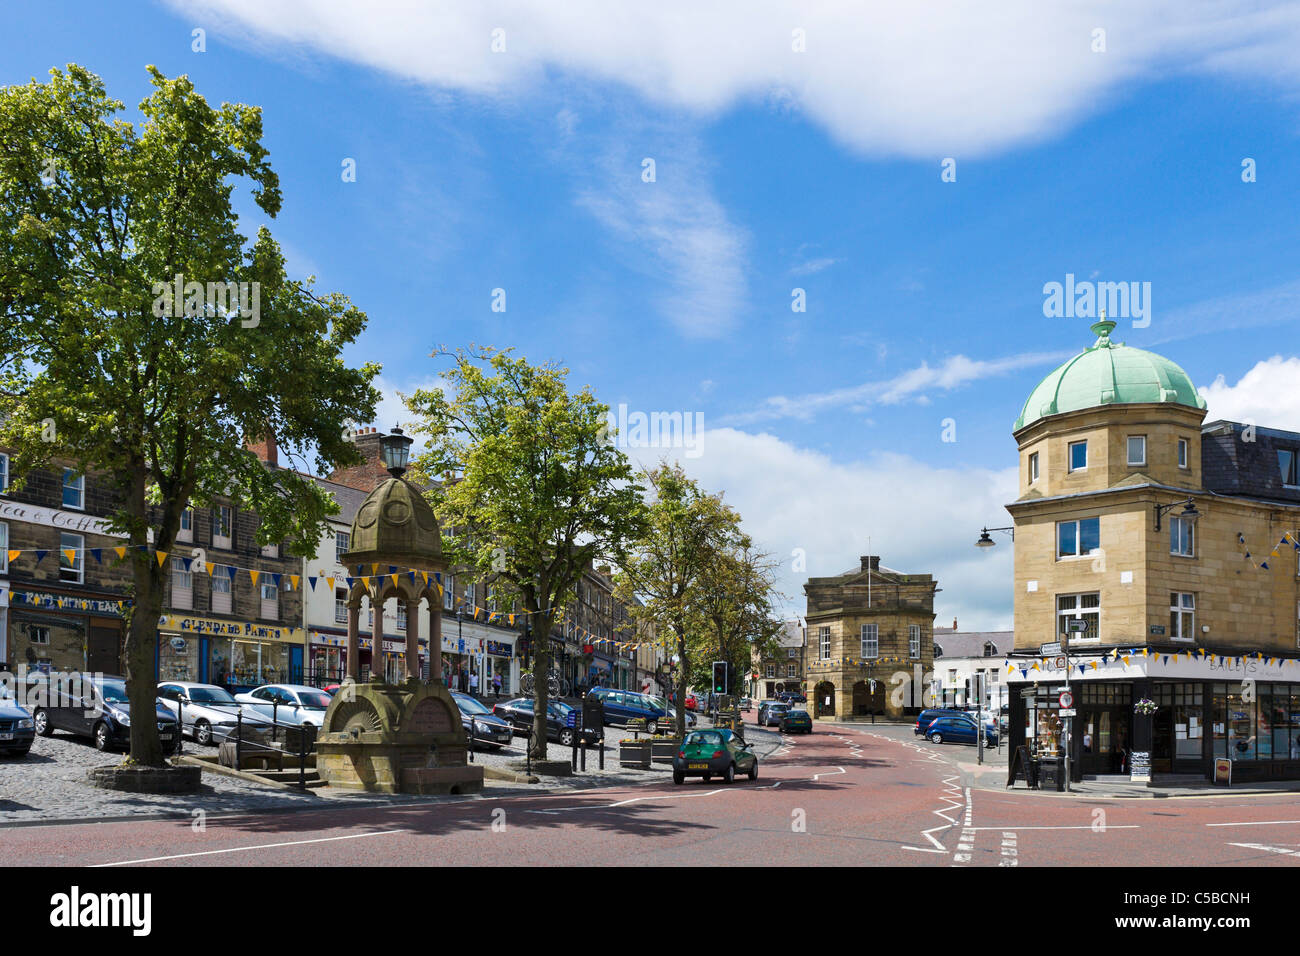 Centre of the market town of Alnwick, Northumberland, North East England, UK - Stock Image